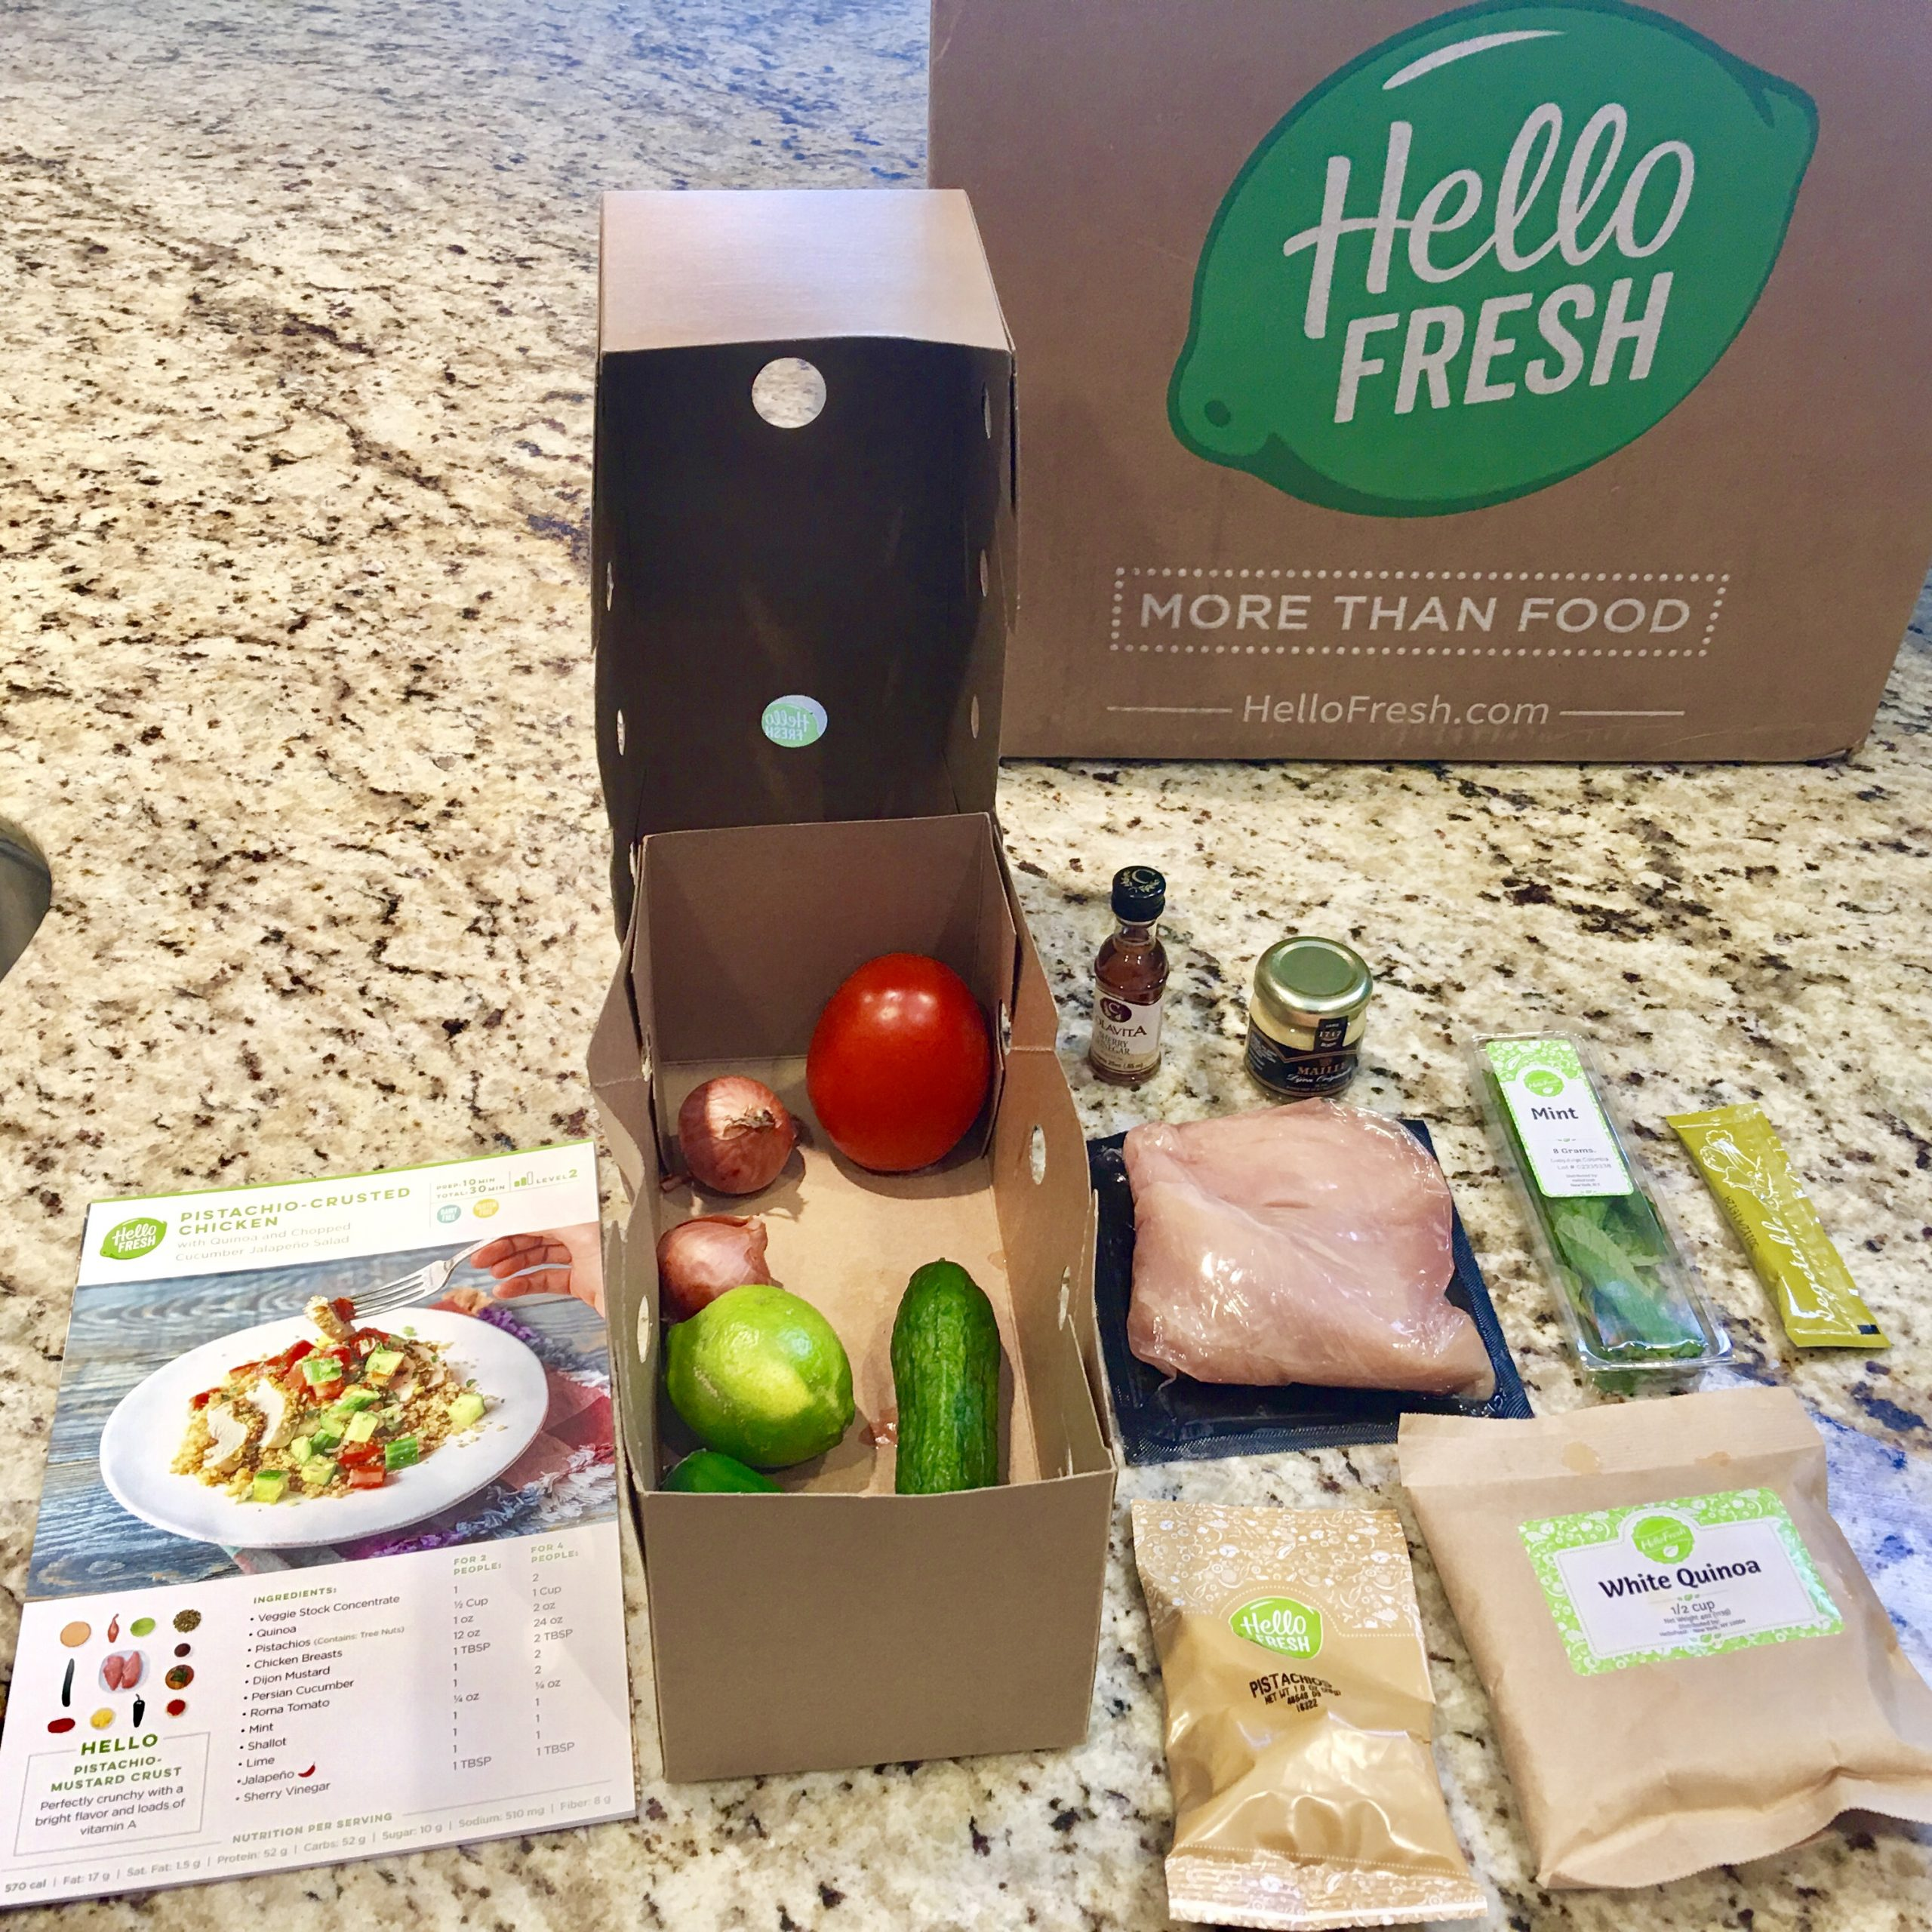 Meal Kit Delivery Service Hellofresh For Sale